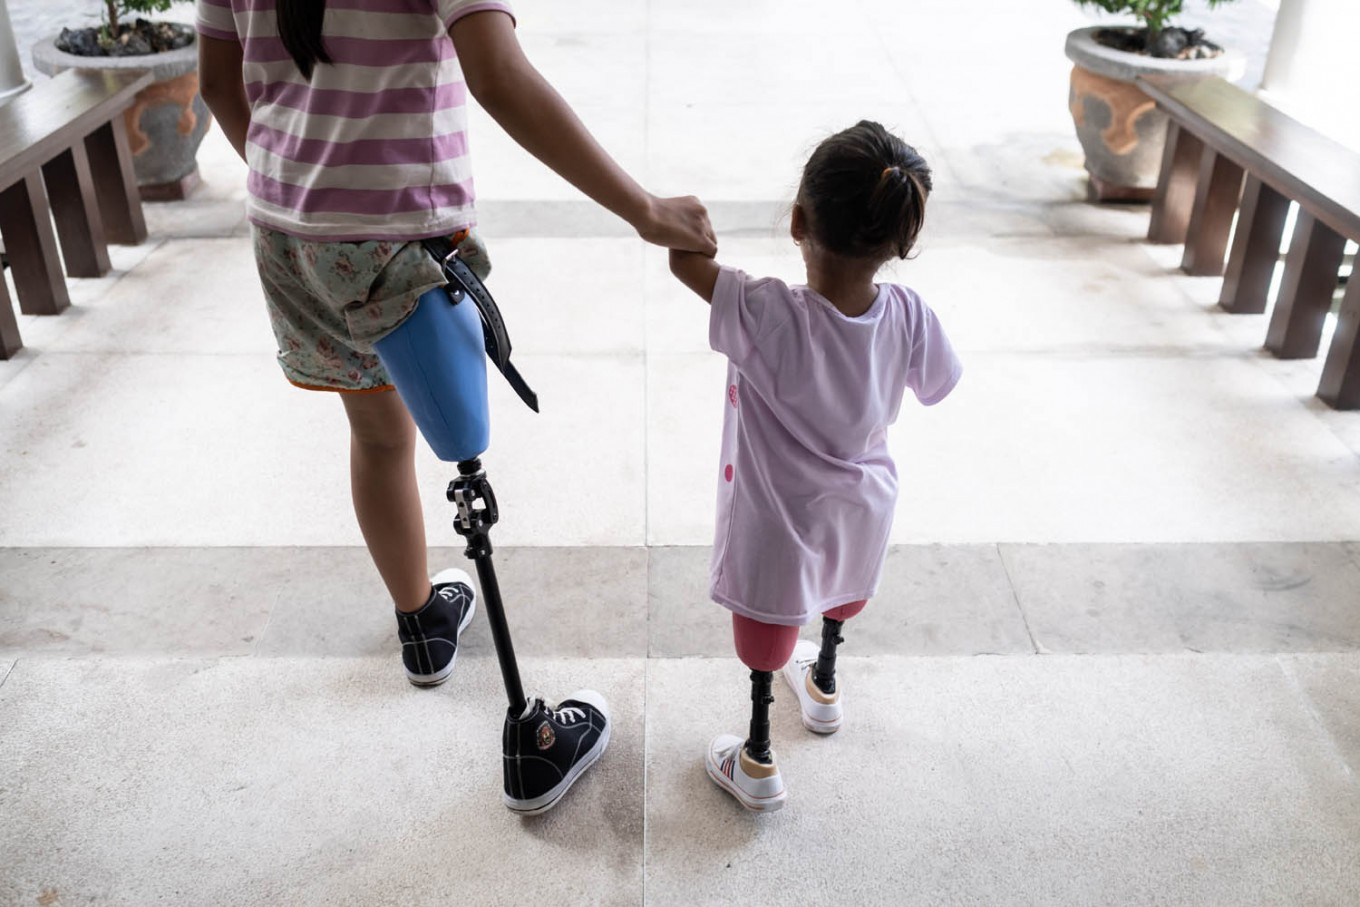 Ulil and Safitri walk hand in hand as they practice with their prosthetic legs they have long waited for. JP/Agung Parameswara